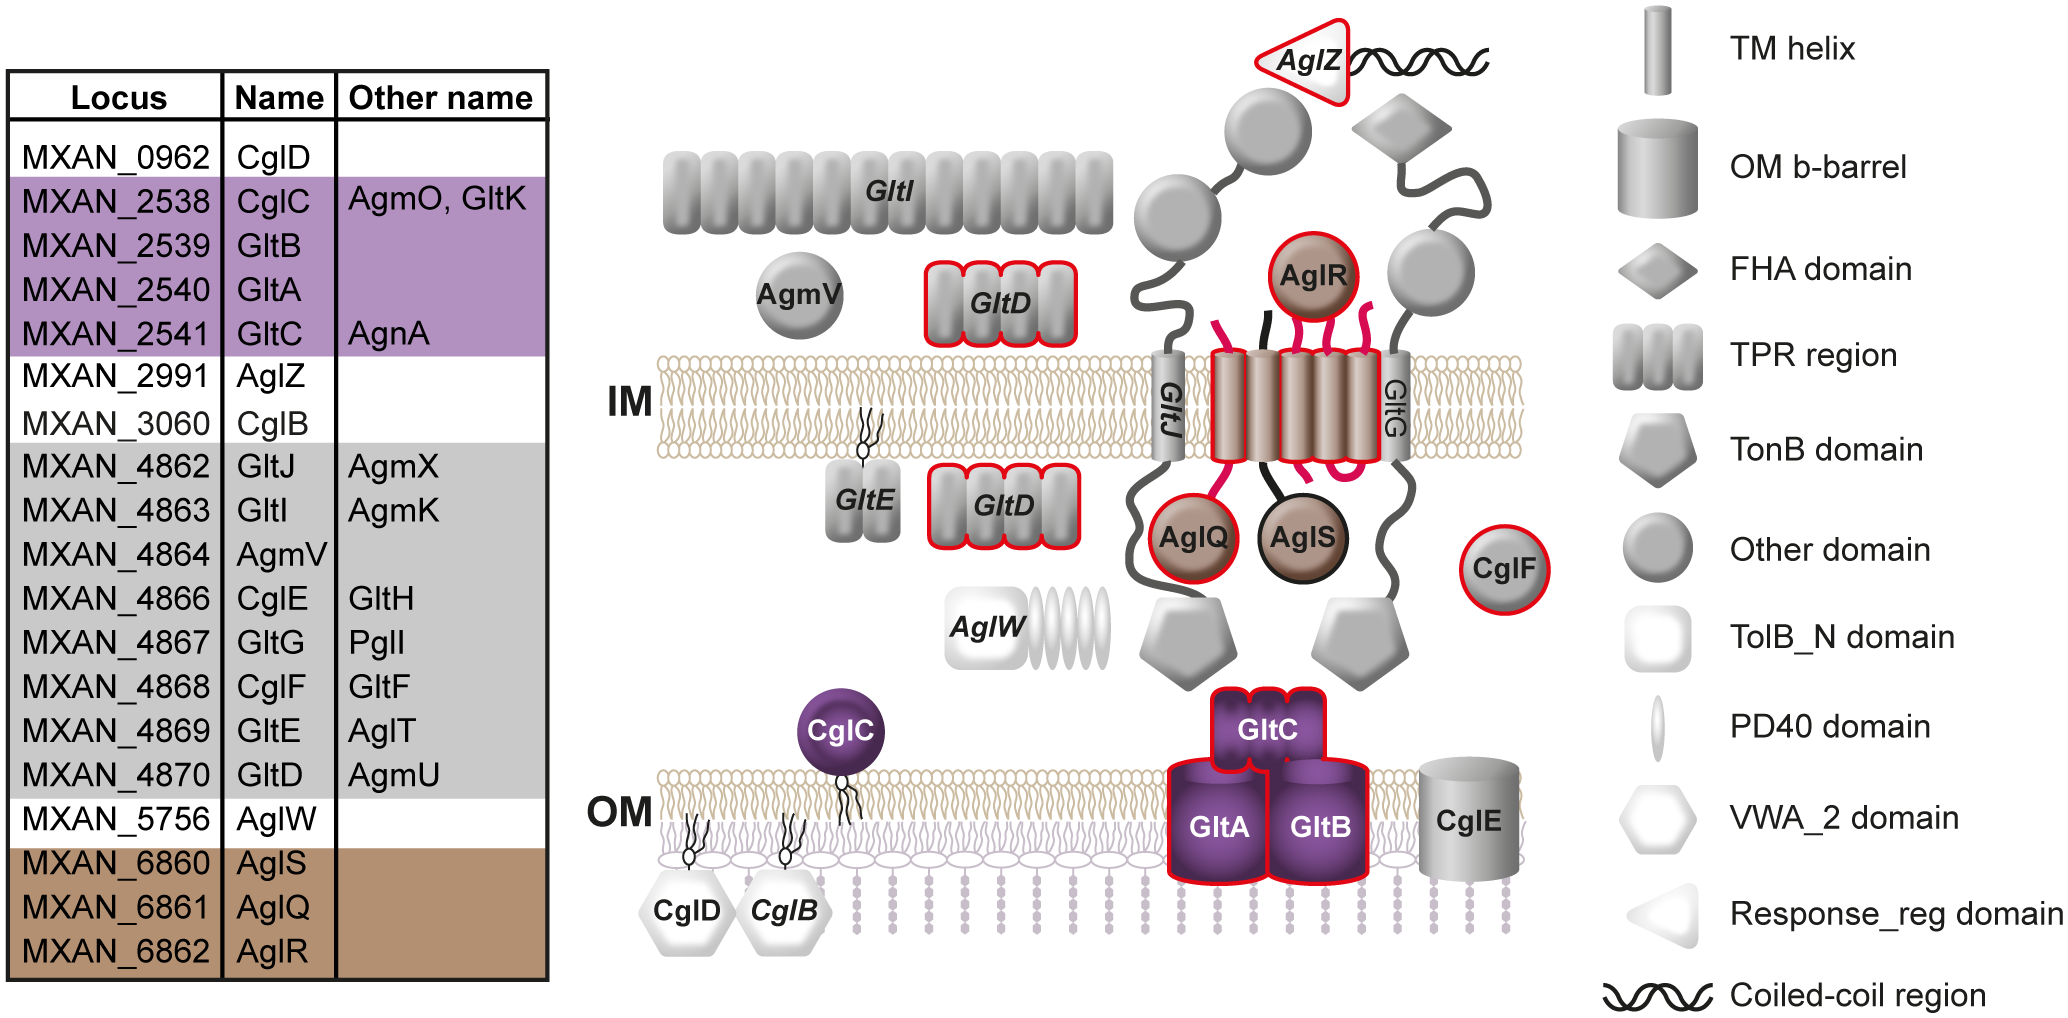 Subcellular localization of proteins required for gliding motility.